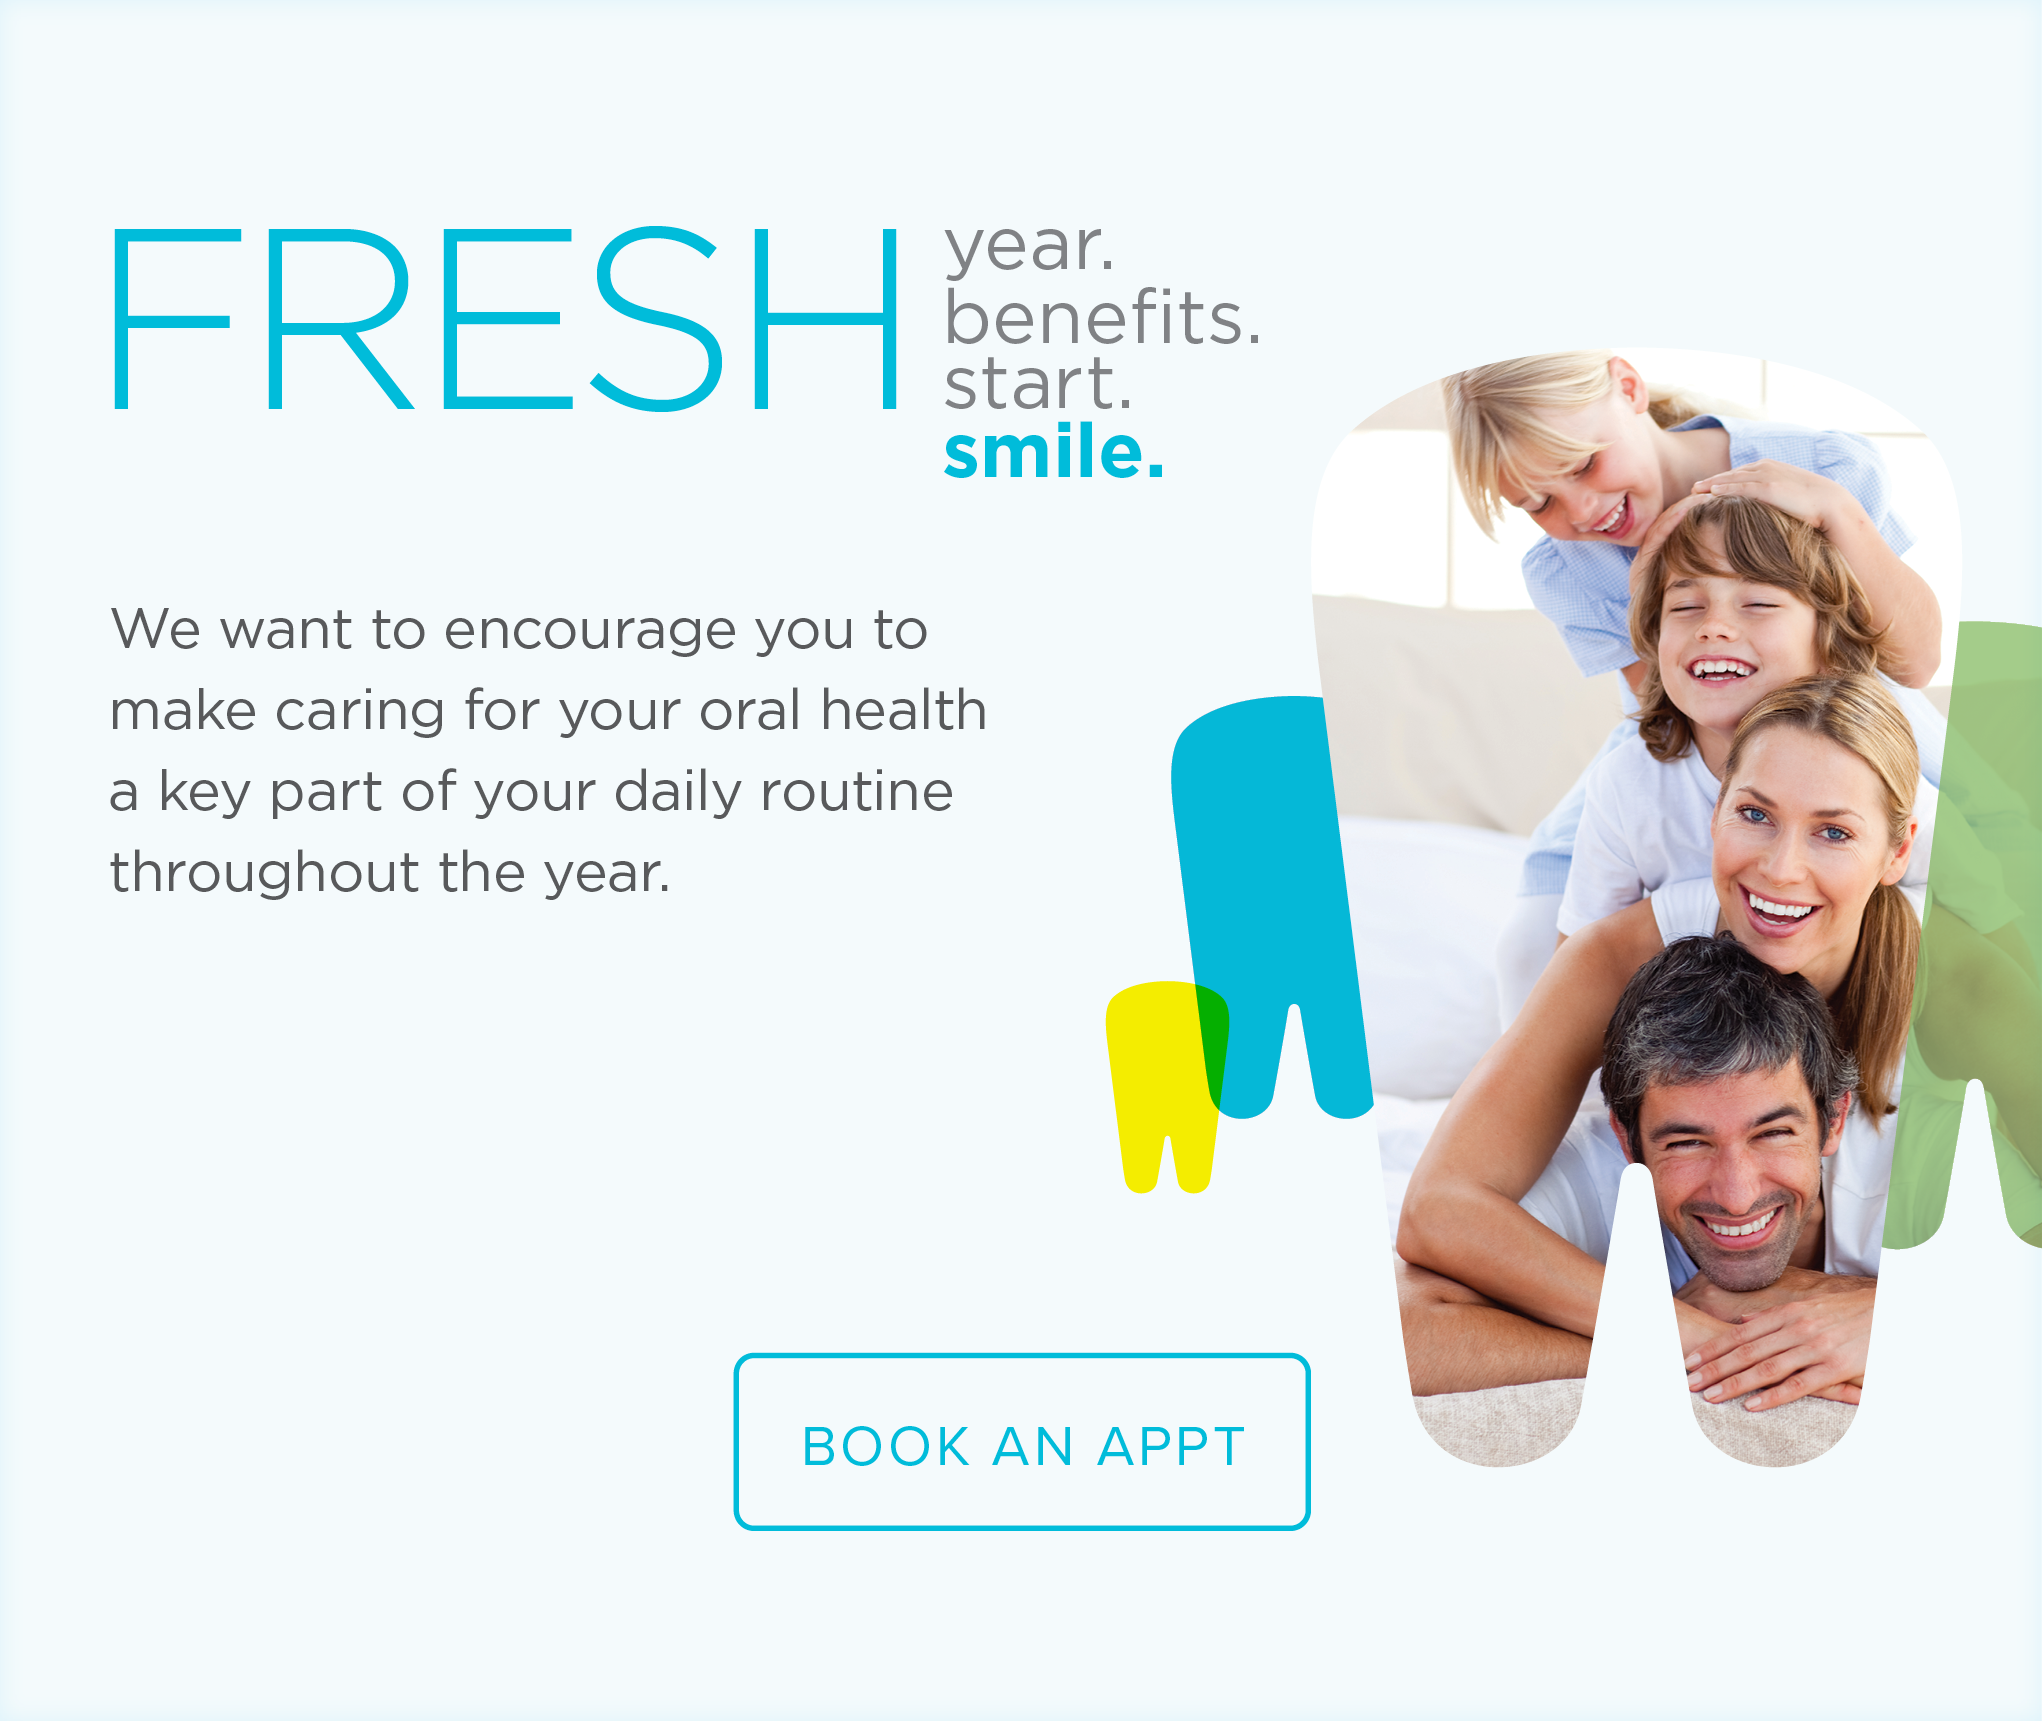 Beach Dental Group - Make the Most of Your Benefits